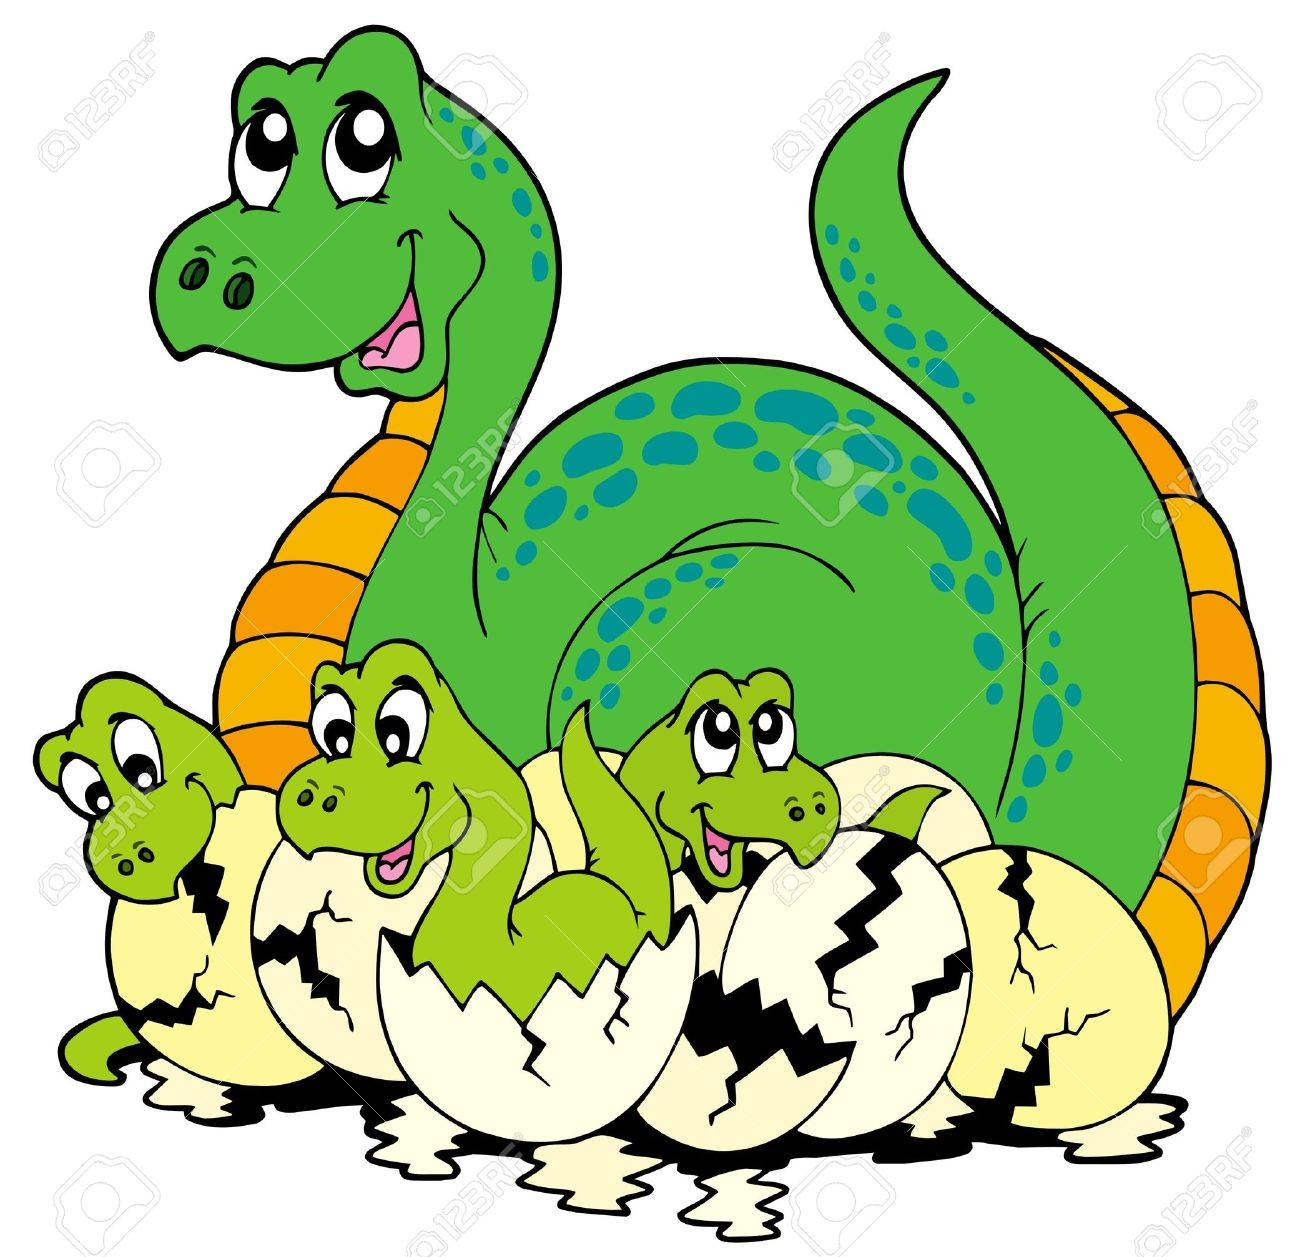 Dinosaur Mom With Cute Babies Royalty Free Cliparts Vectors And Stock Illustration Image 7150776